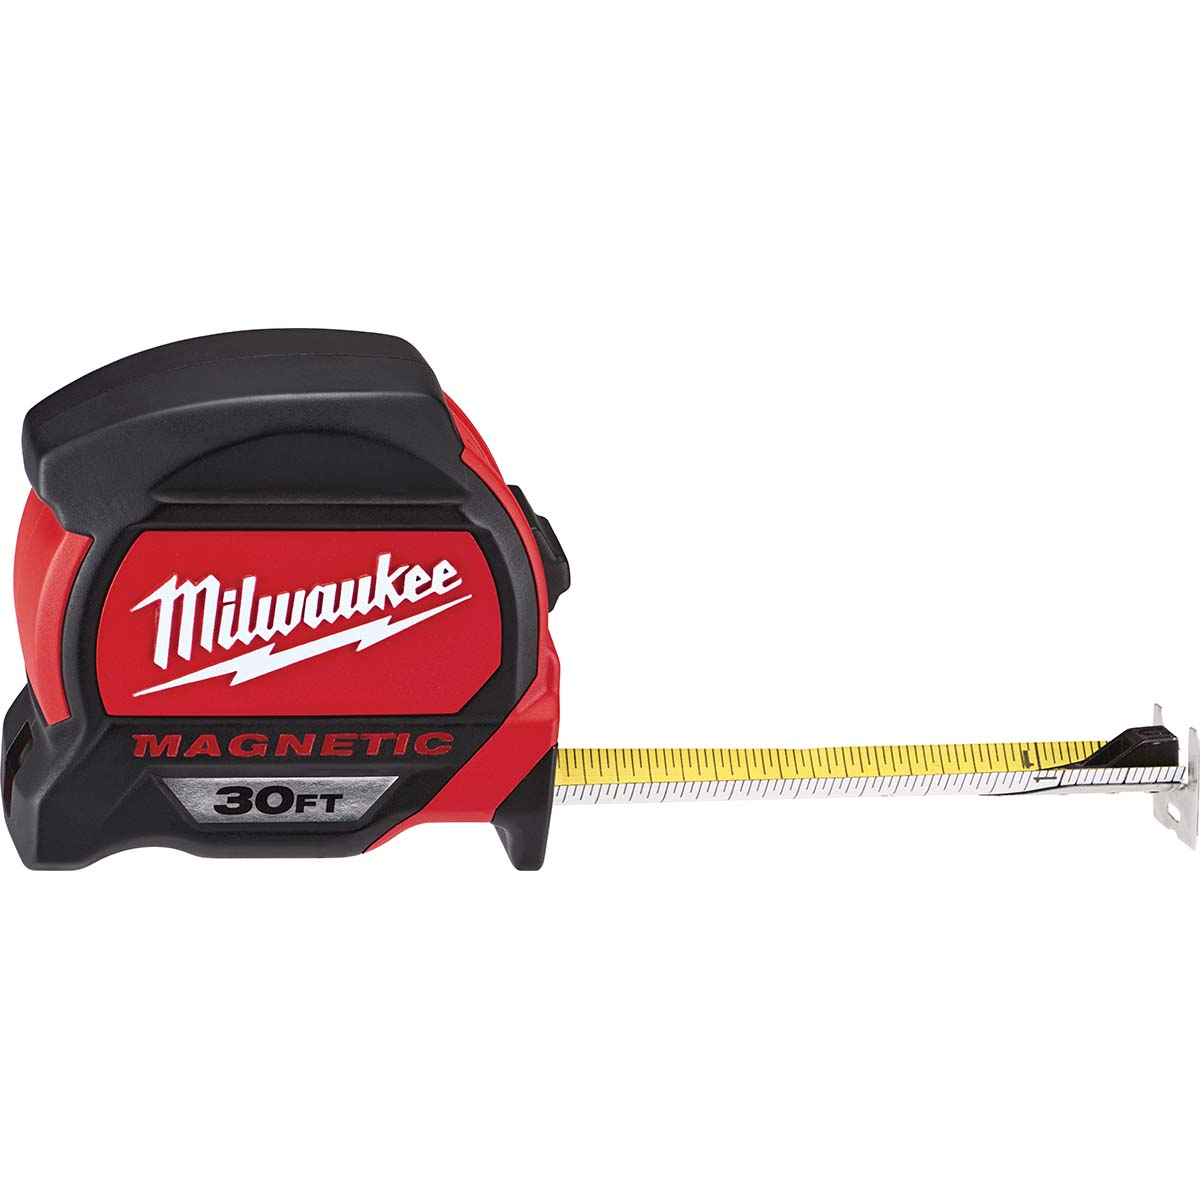 30ft Magnetic Tape Measure